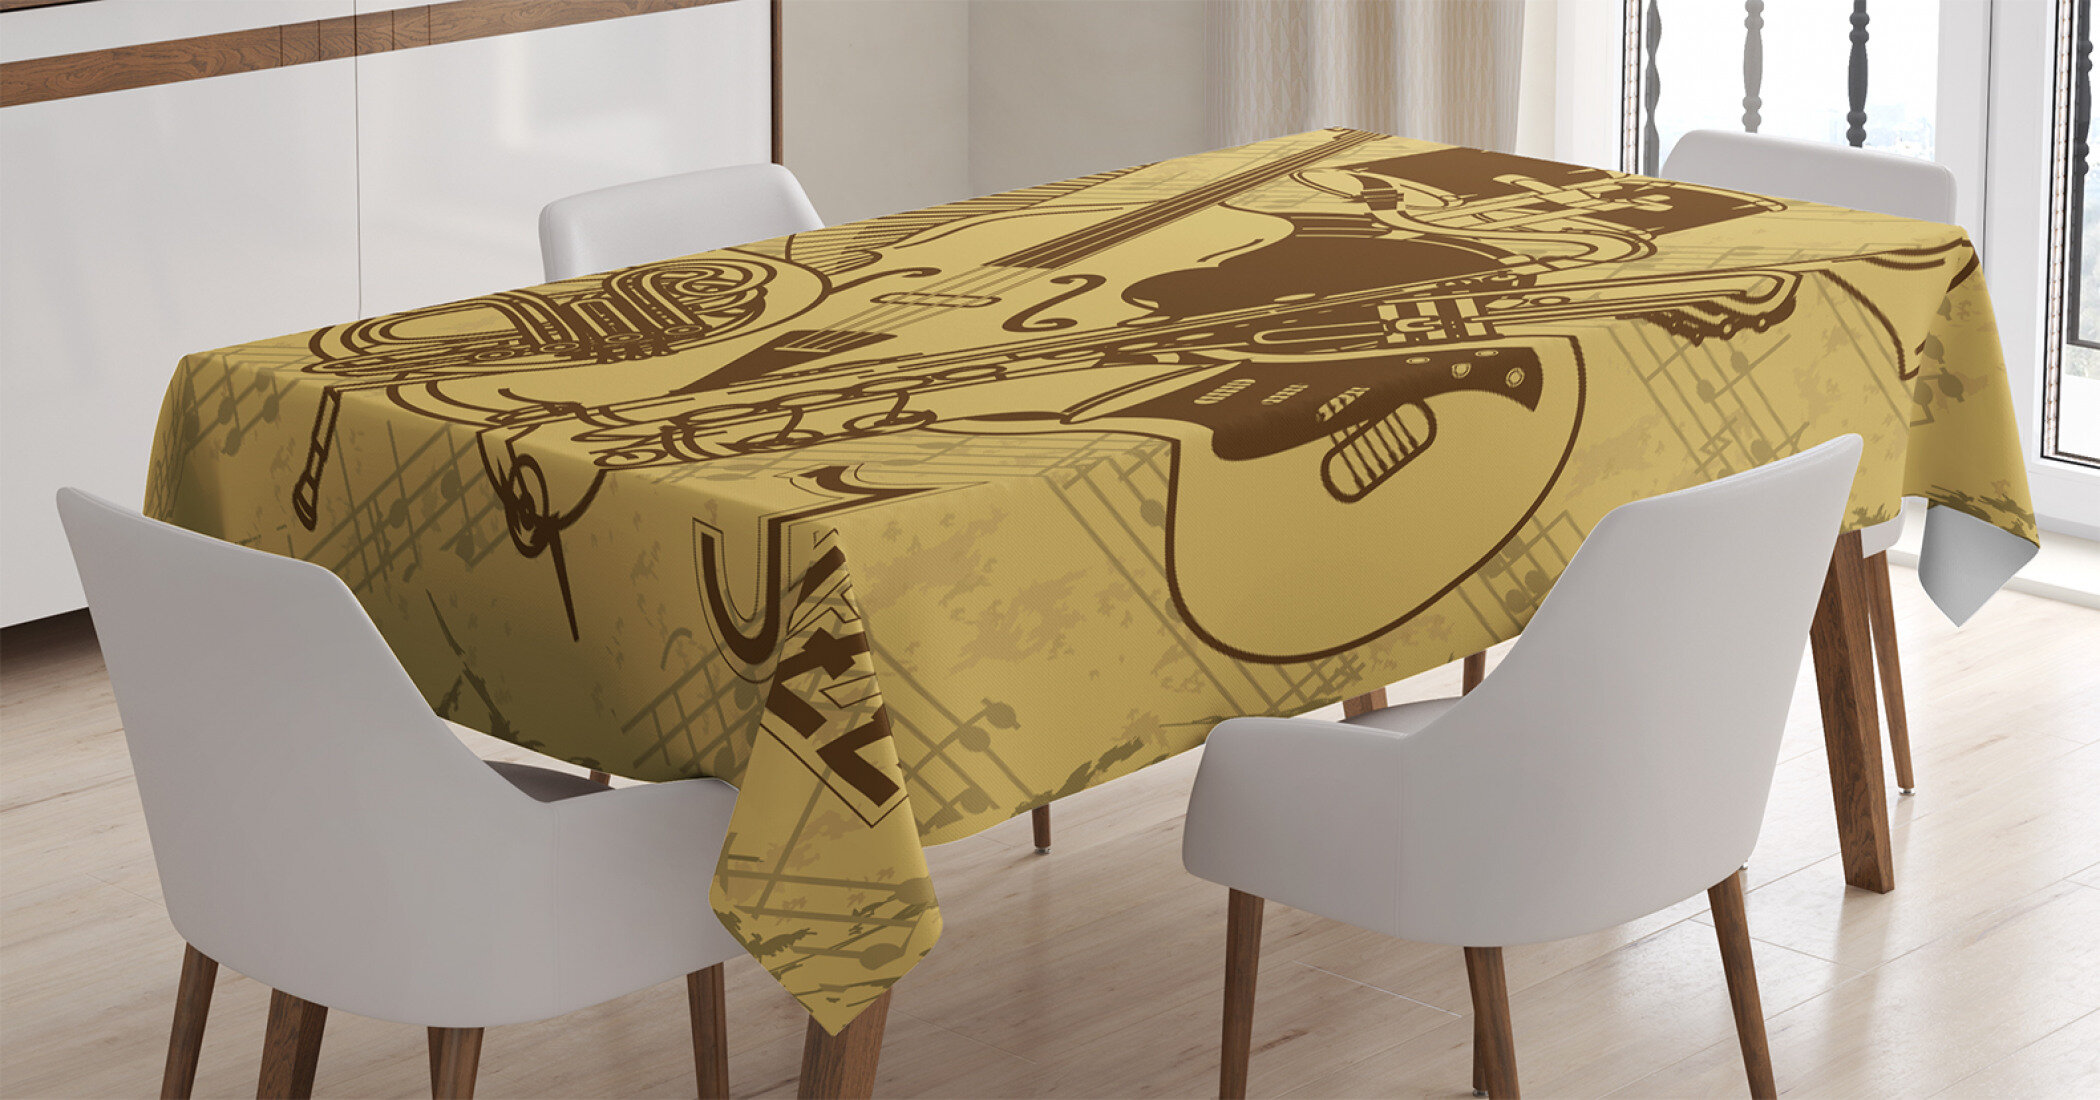 Ambesonne Music Tablecloth, Jazz Music Equipments With Vintage Background  Retro Style In Music Themed Print, Rectangular Table Cover For Dining Room  ...